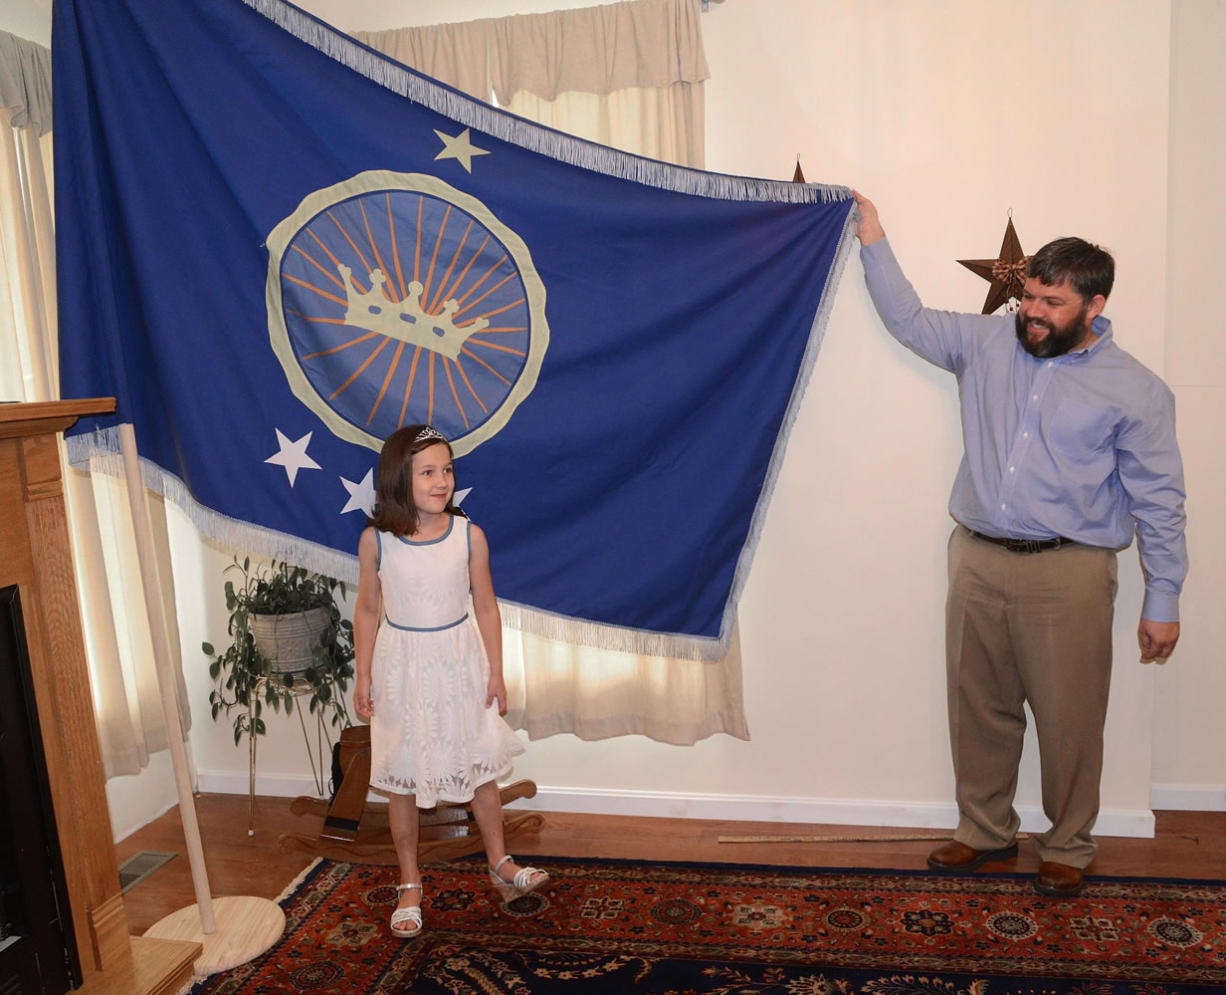 Jeremiah Heaton and his seven year-old daughter, Princess Emily, show the flag,July 2, 2014, in Abingdon, Va,  that their family designed as they try to claim a piece of land in the Eastern African region of Bir Tawil. (AP Photo/Bristol Herald Courier, David Crigger)